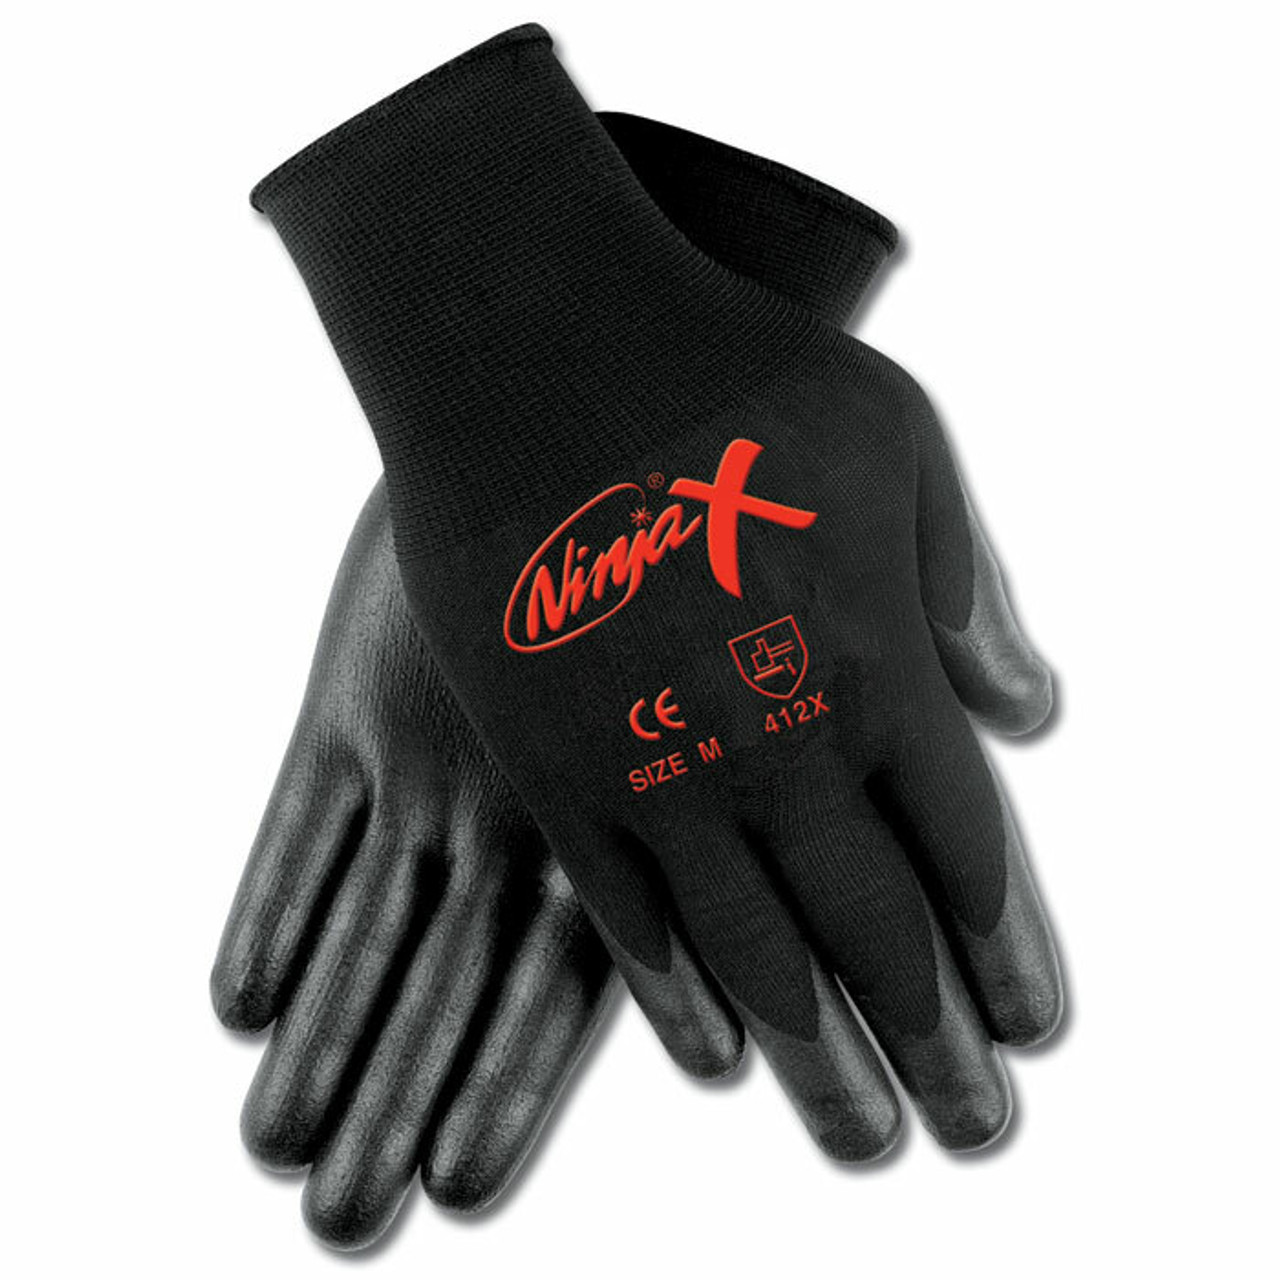 SHOWA 5122 Neoprene Wet Grip Chemical Resistant Safety Glove X-Large